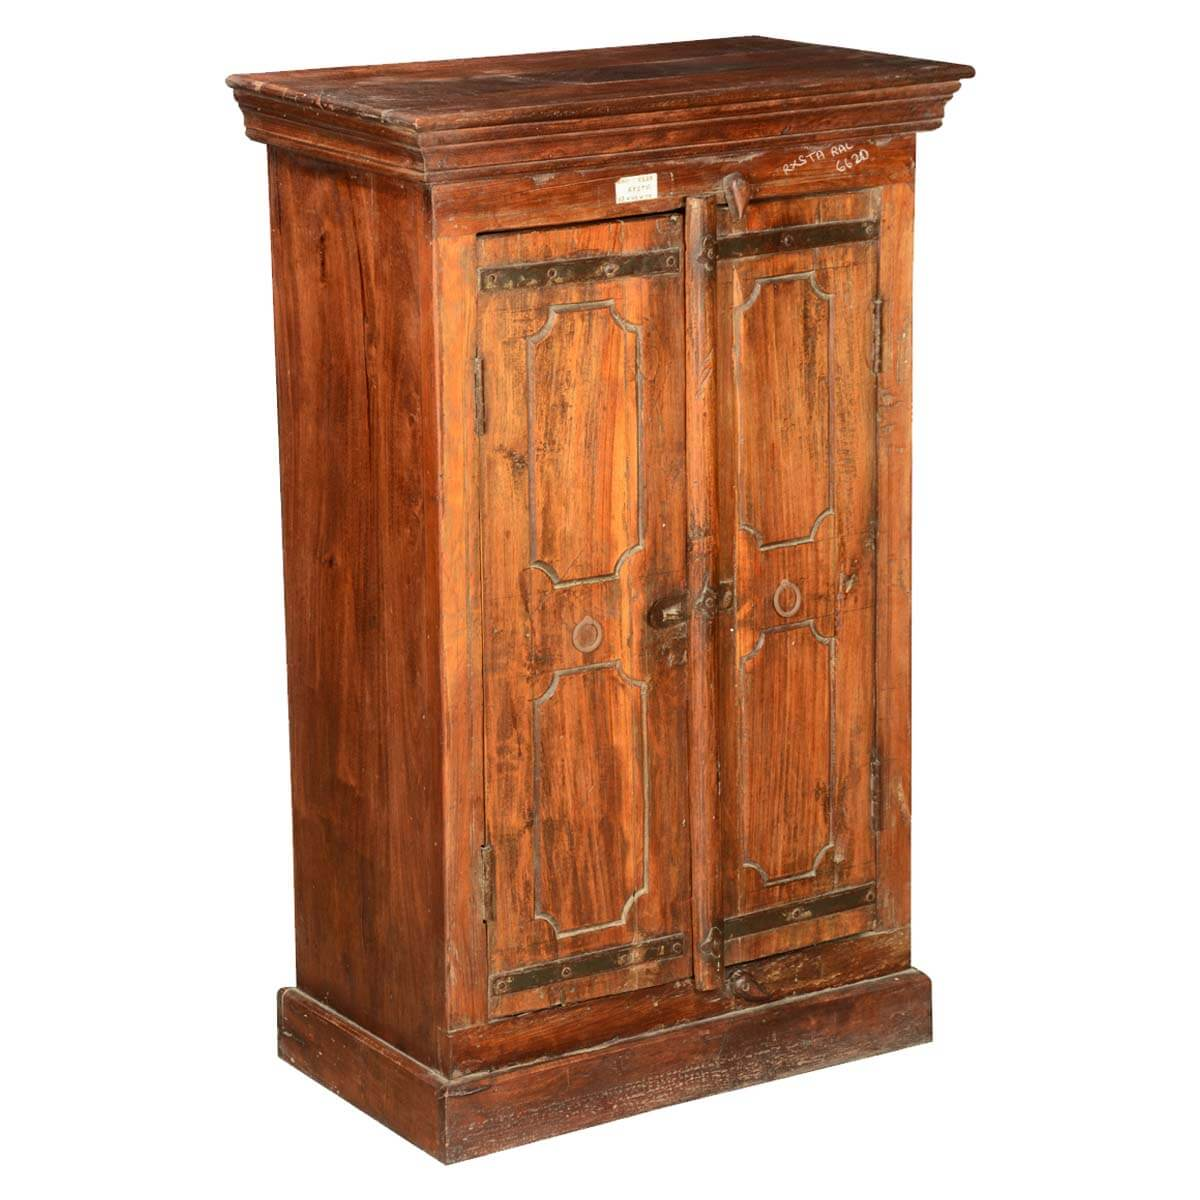 pennsylvania german reclaimed wood tall double door storage cabinet. Black Bedroom Furniture Sets. Home Design Ideas